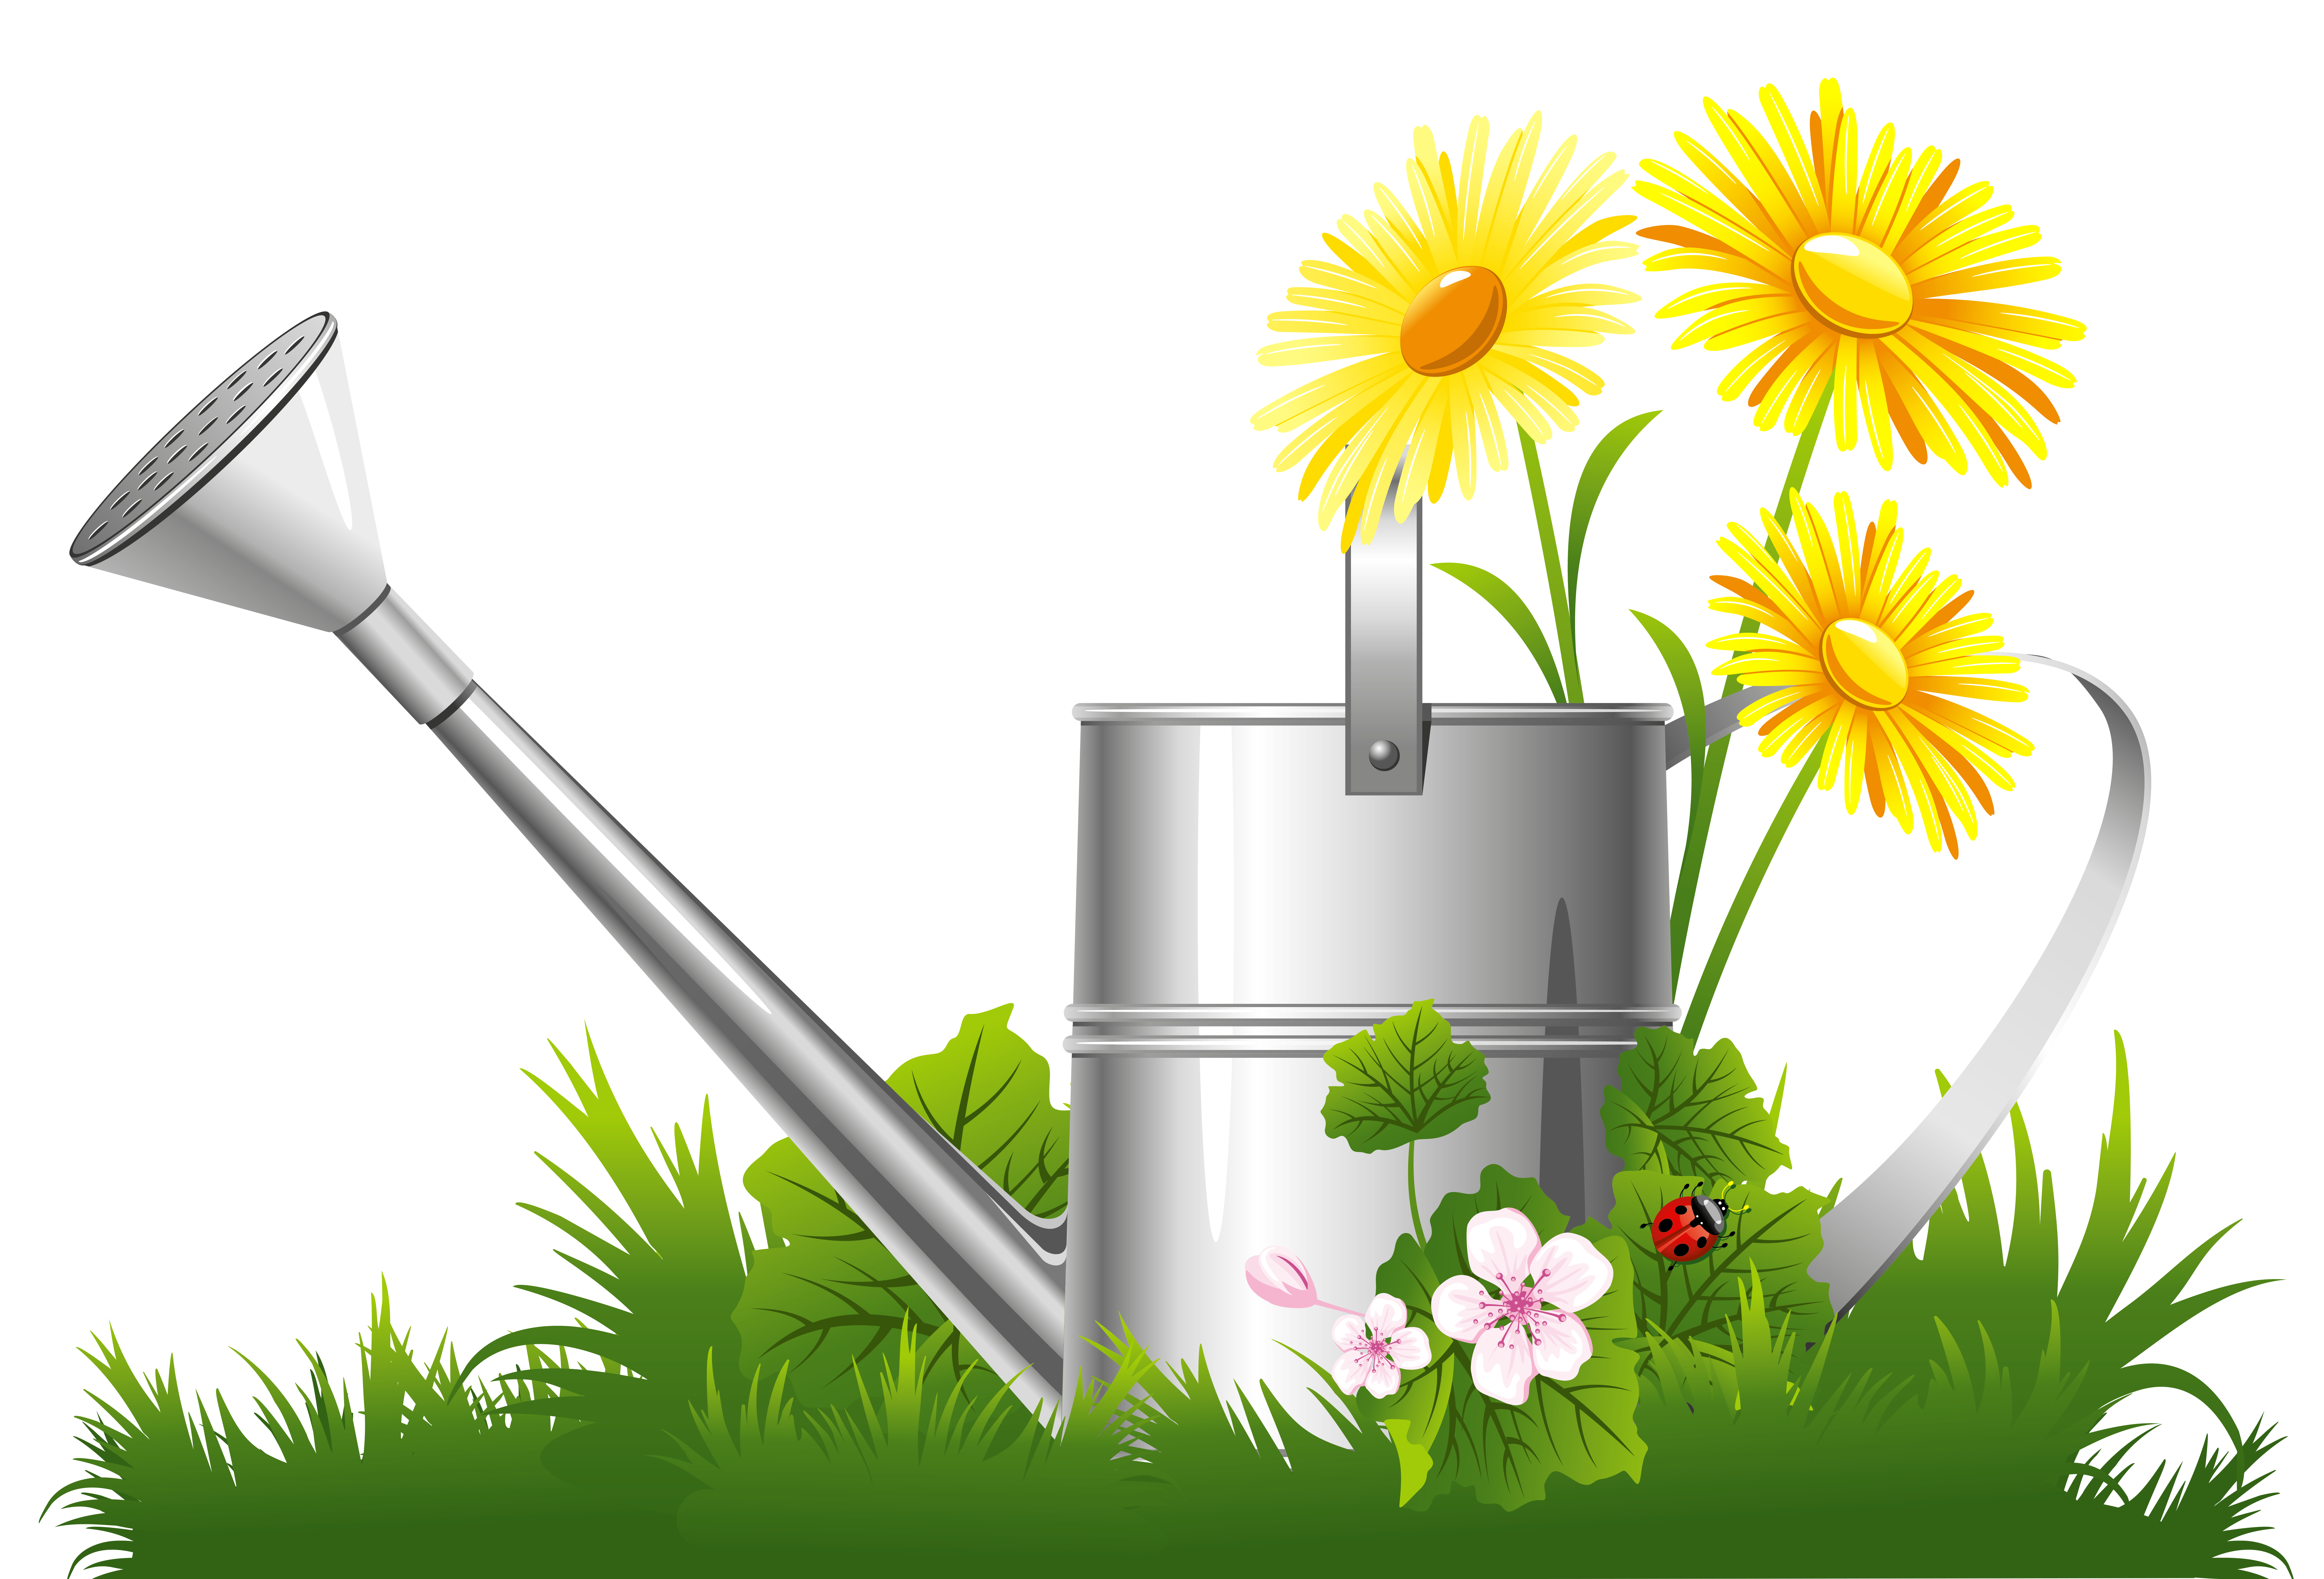 spring free clipart at getdrawings com free for personal use rh getdrawings com free clip art spring break free clip art spring flower